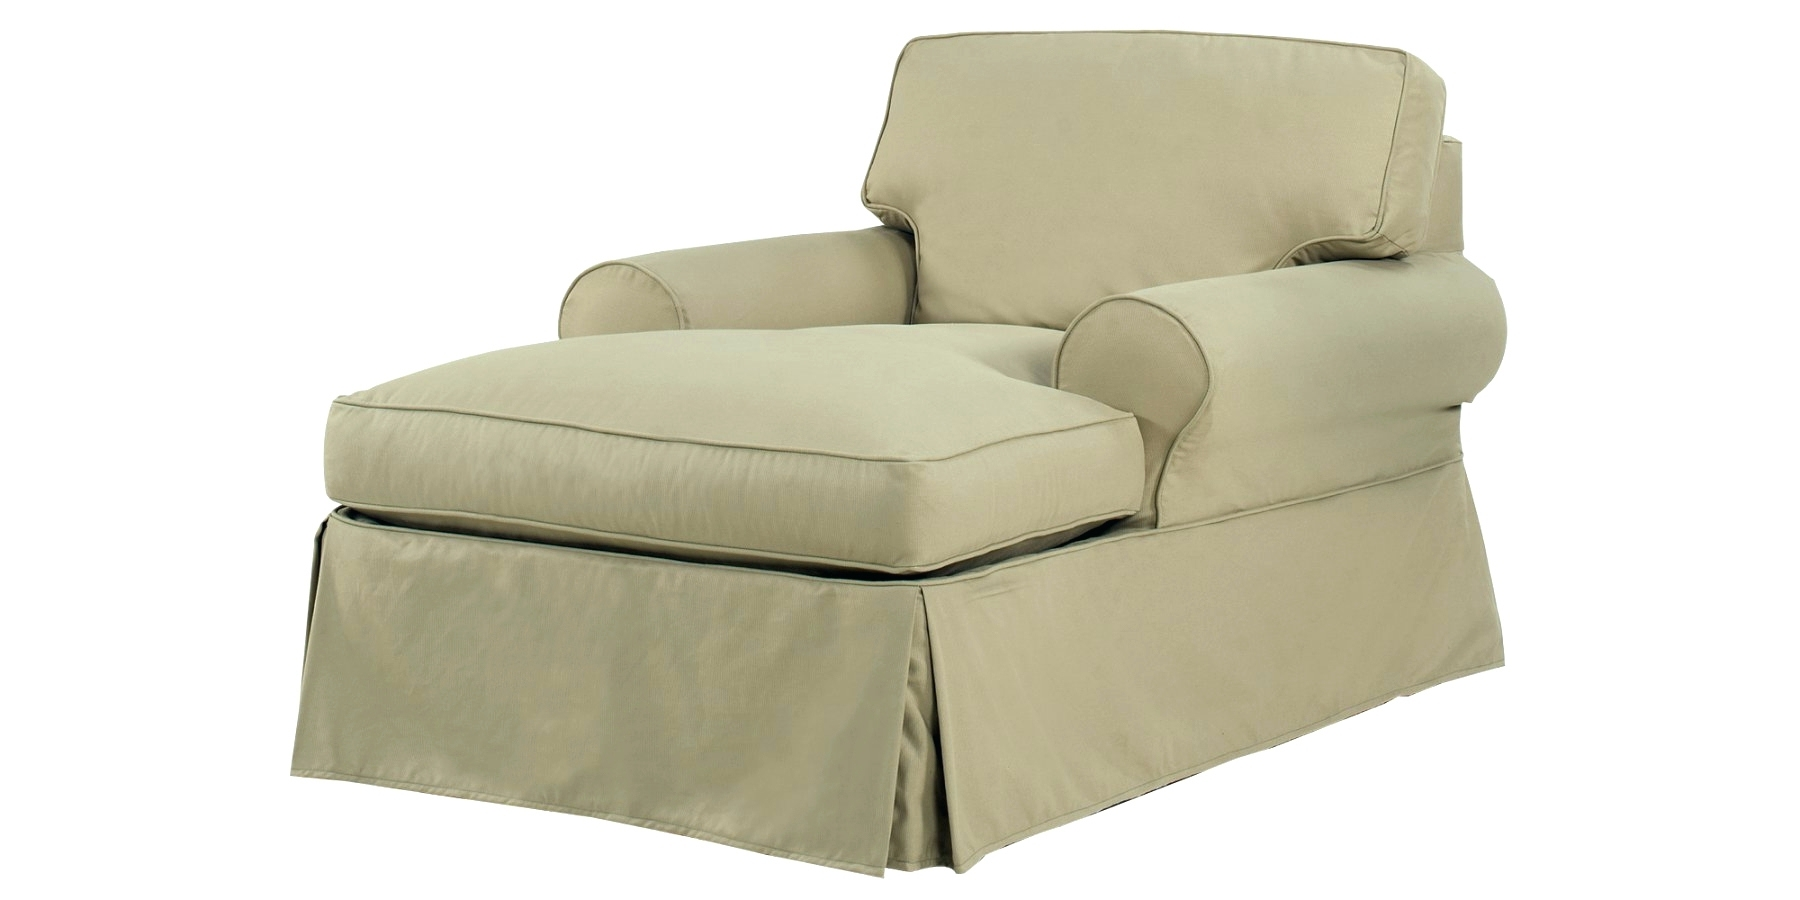 15 Ideas of Indoor Chaise Lounge Slipcovers